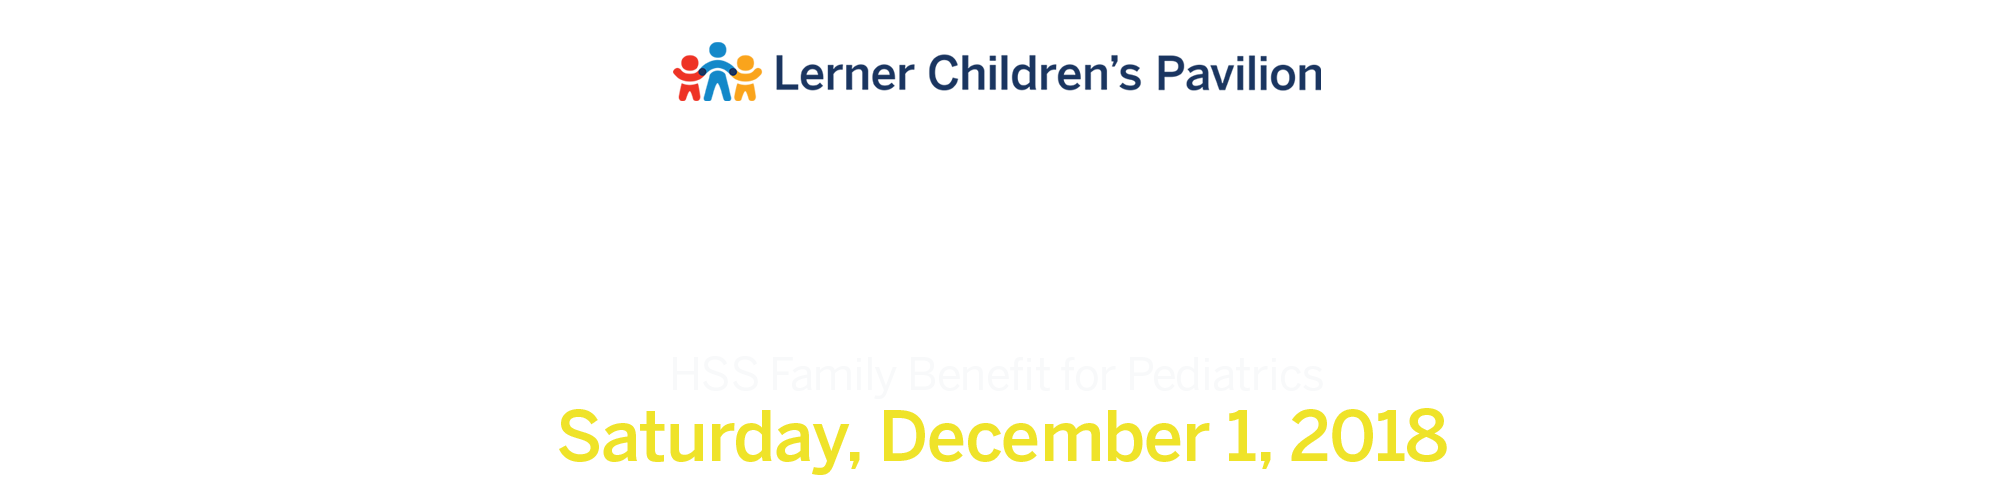 Lerner's Pavilion logo and text reading HSS Family Benefit for Pediatrics, Saturday Dec. 1, 2018